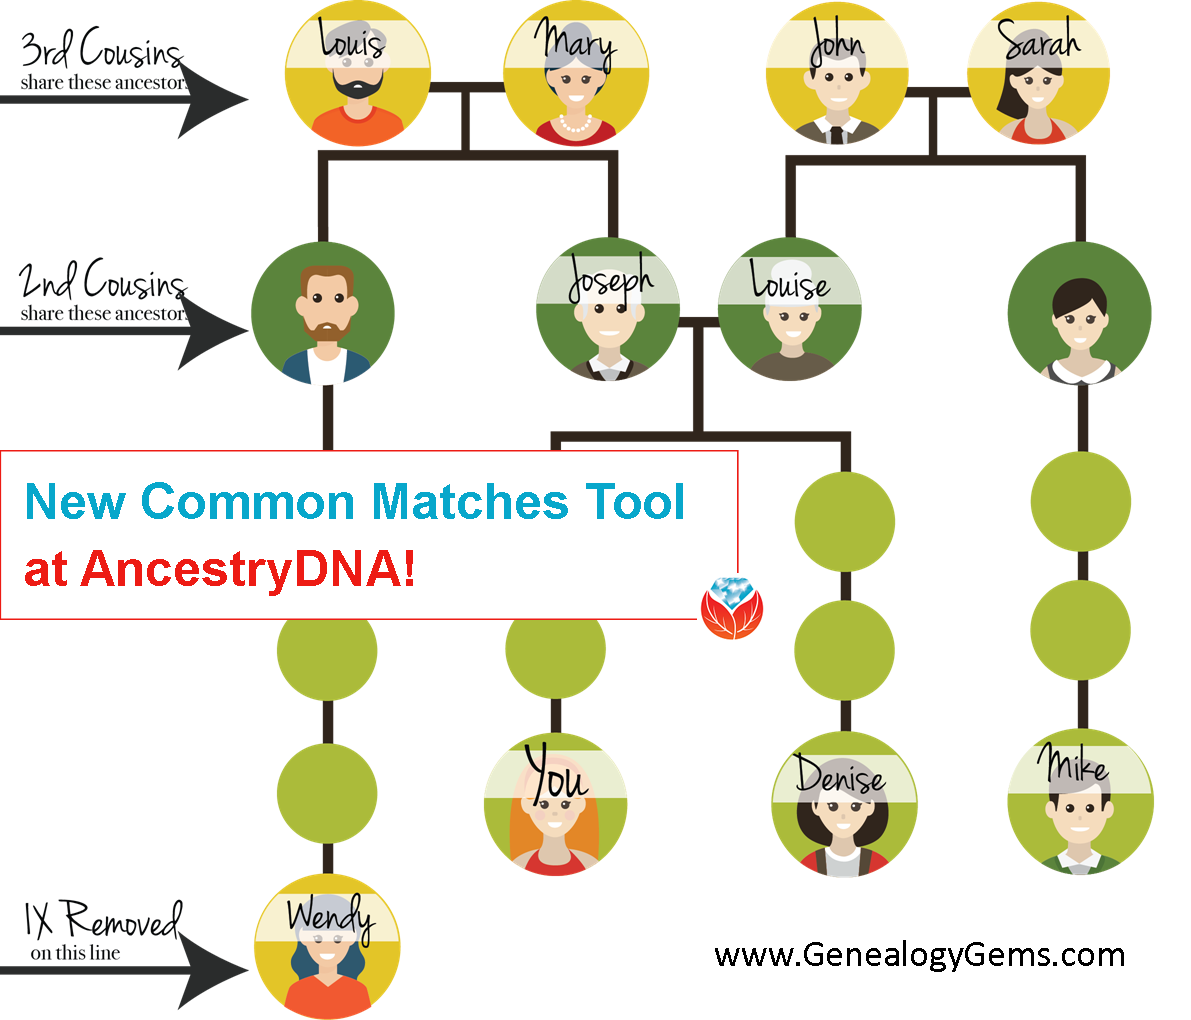 New AncestryDNA Common Matches Tool: Love It!